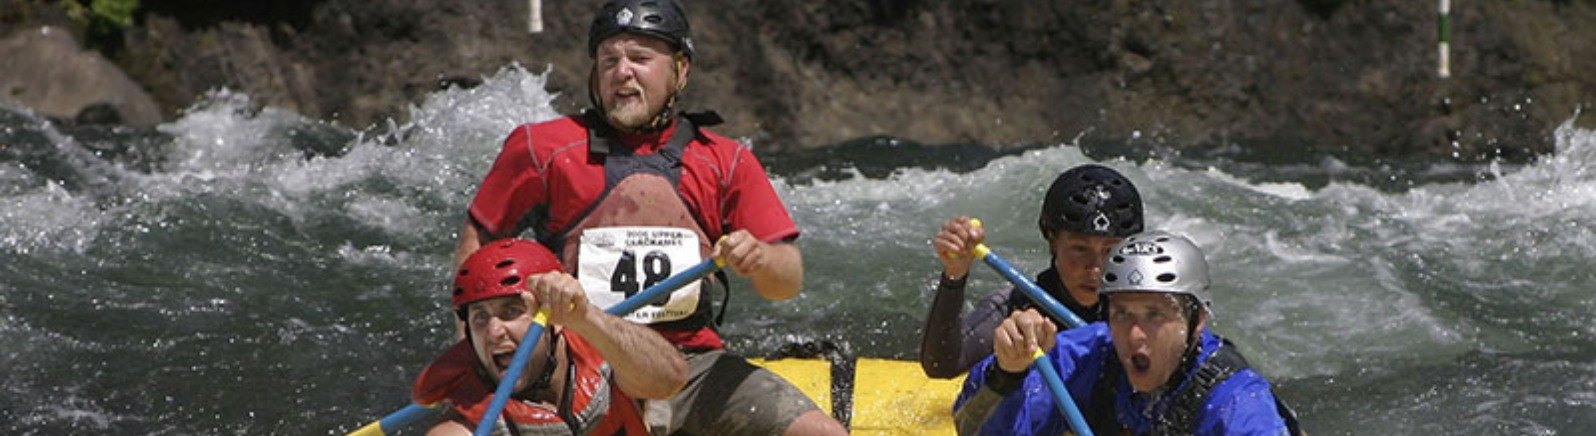 4 male competitors go all out in the rafting competition at the Upper Clackamas Whitewater Festival in Estacada in Oregon's Mt. Hood Territory